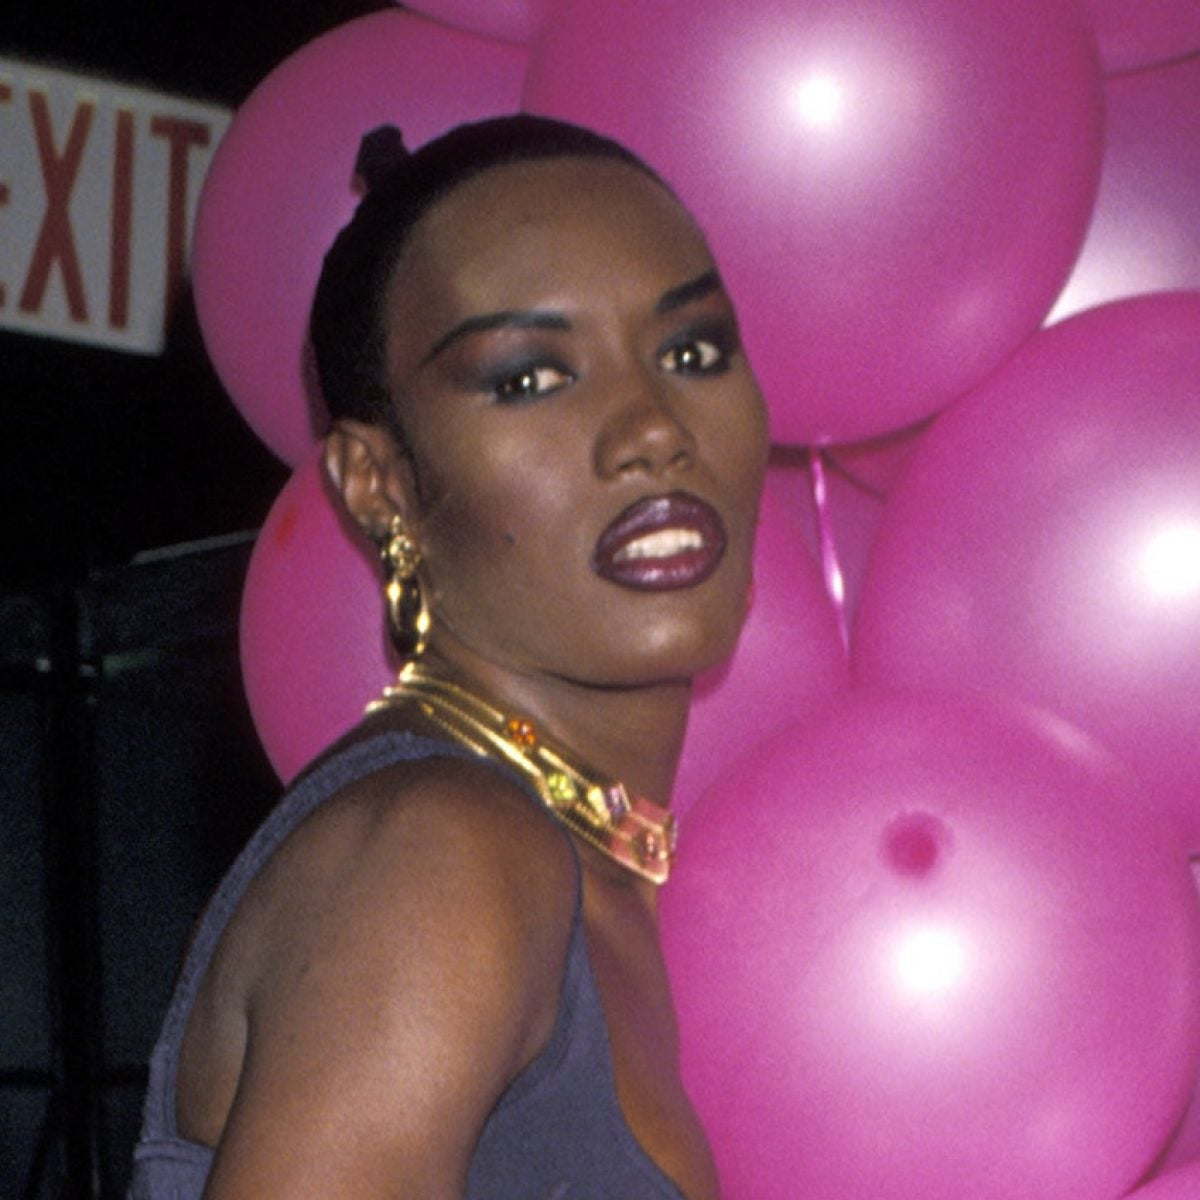 Grace Jones' Thoughts On Self Love, Art And Trusting Your Instincts